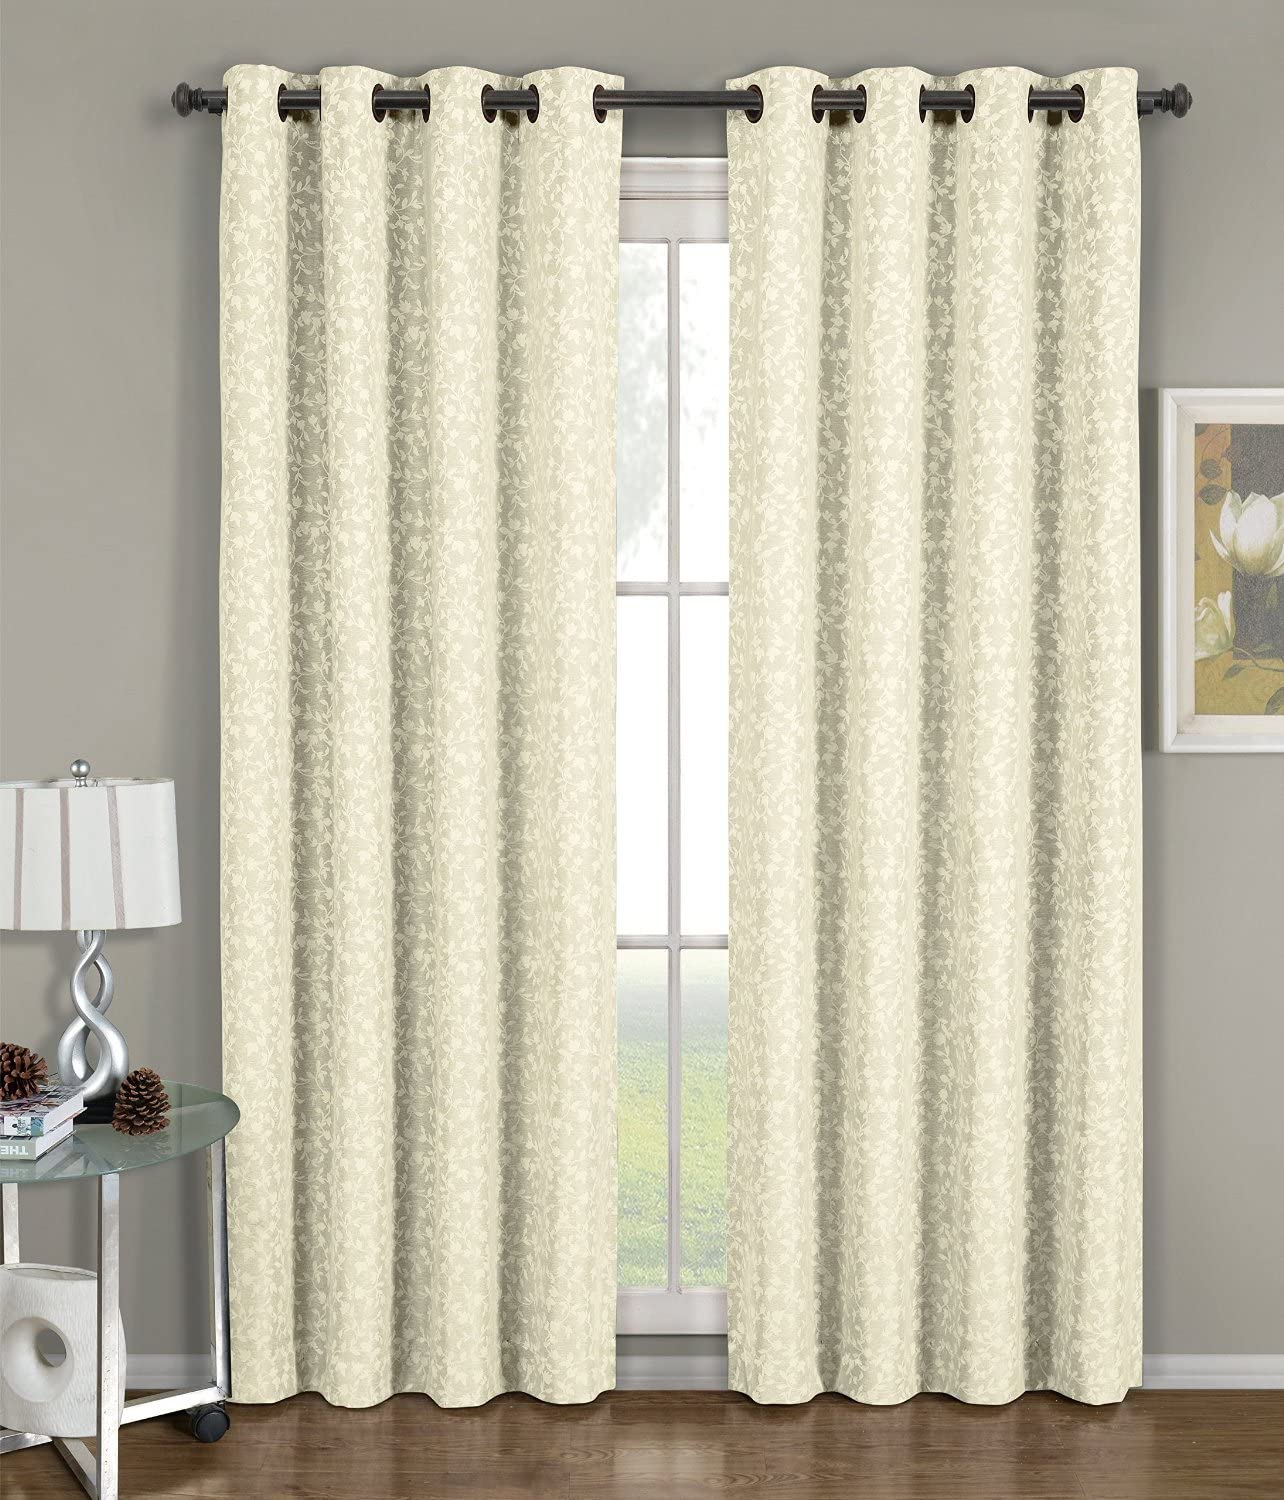 Royal Hotel Fiorela Beige Grommet Jacquard Window Curtain Panel, 1 Single Panel, 54x108 inches